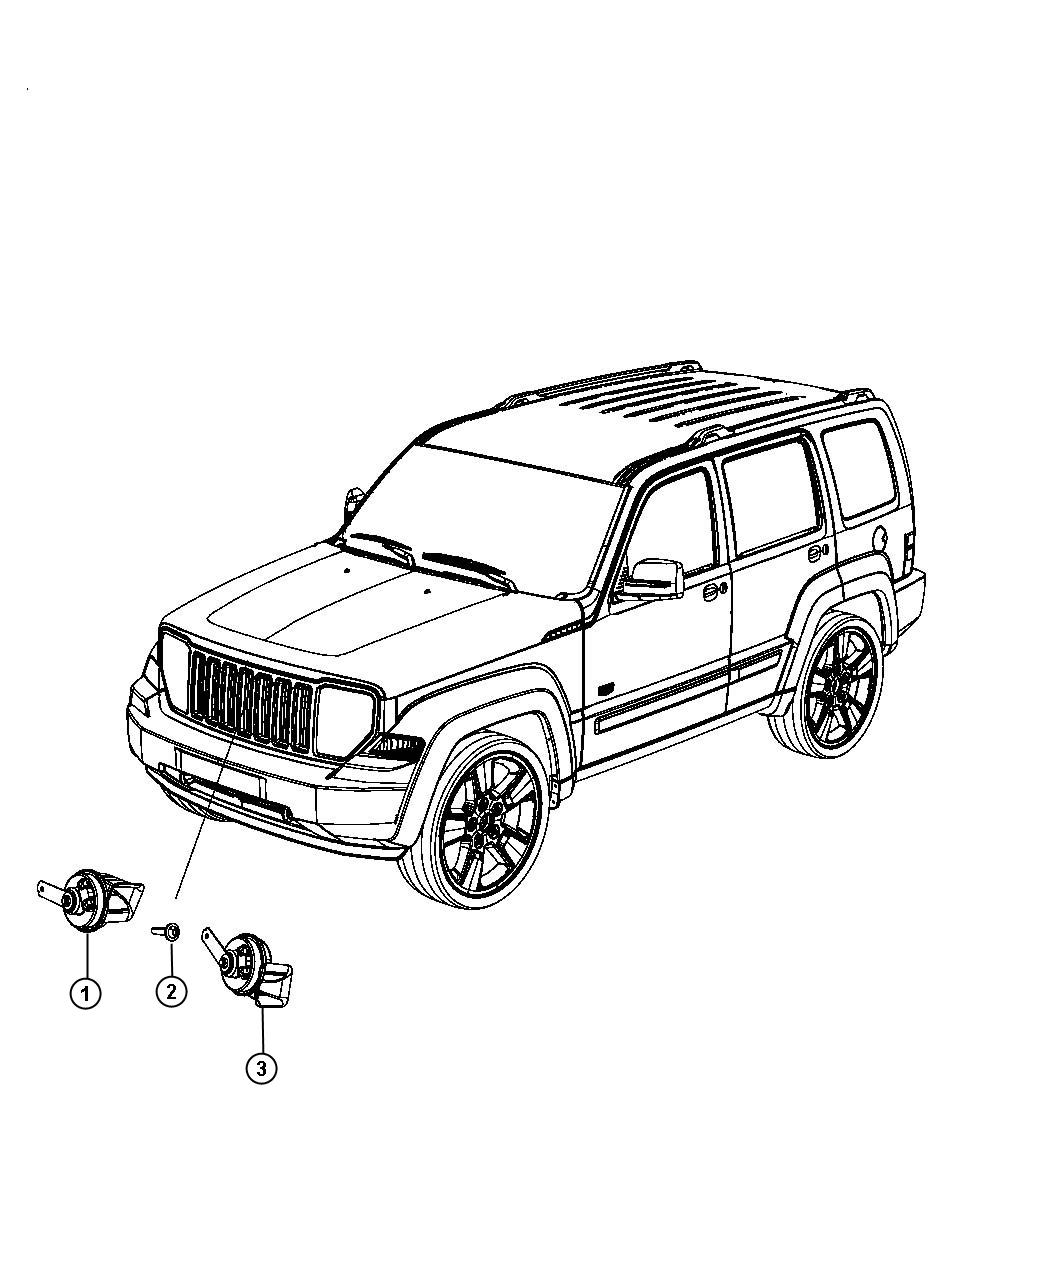 Jeep Liberty Used For Horn And Bracket High Note